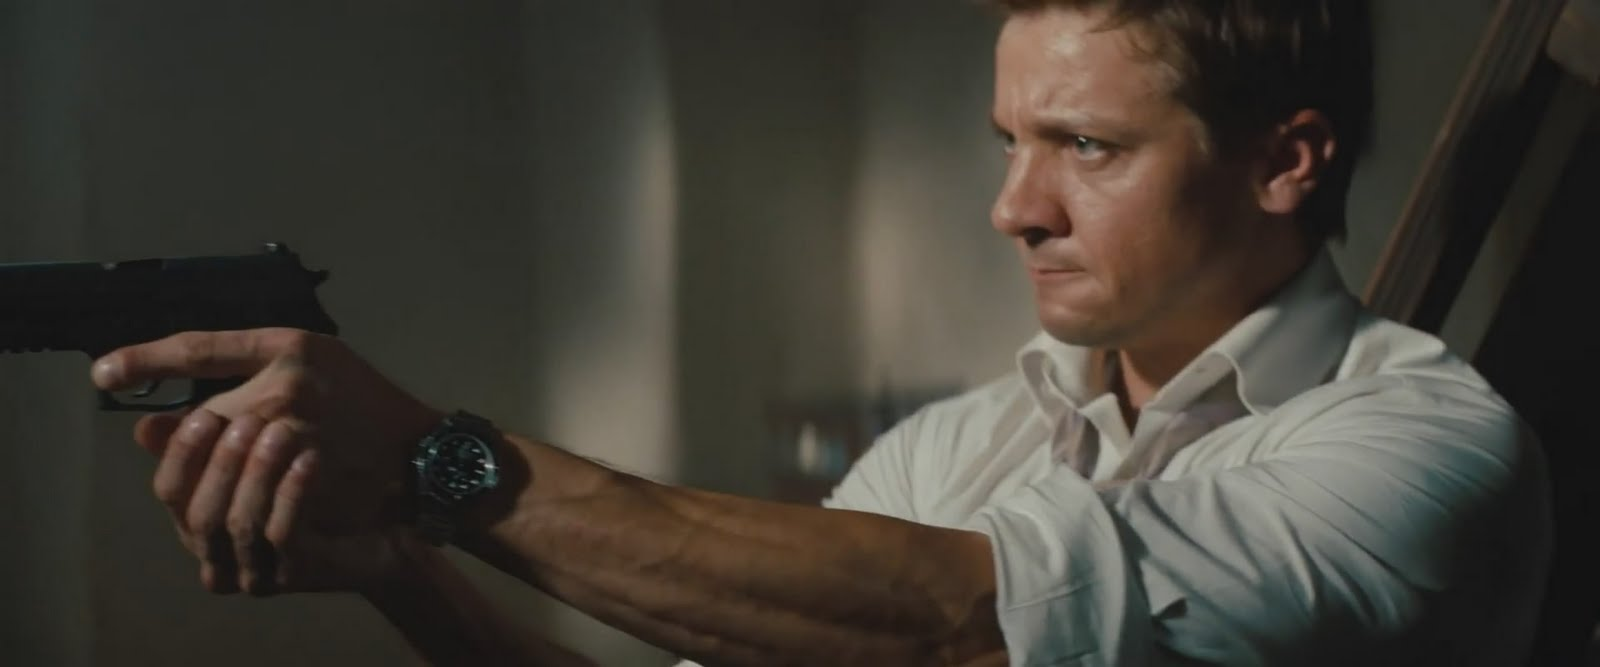 Watch and Download Mission Impossible Fallout (2018) Full Movie Mp4 HD